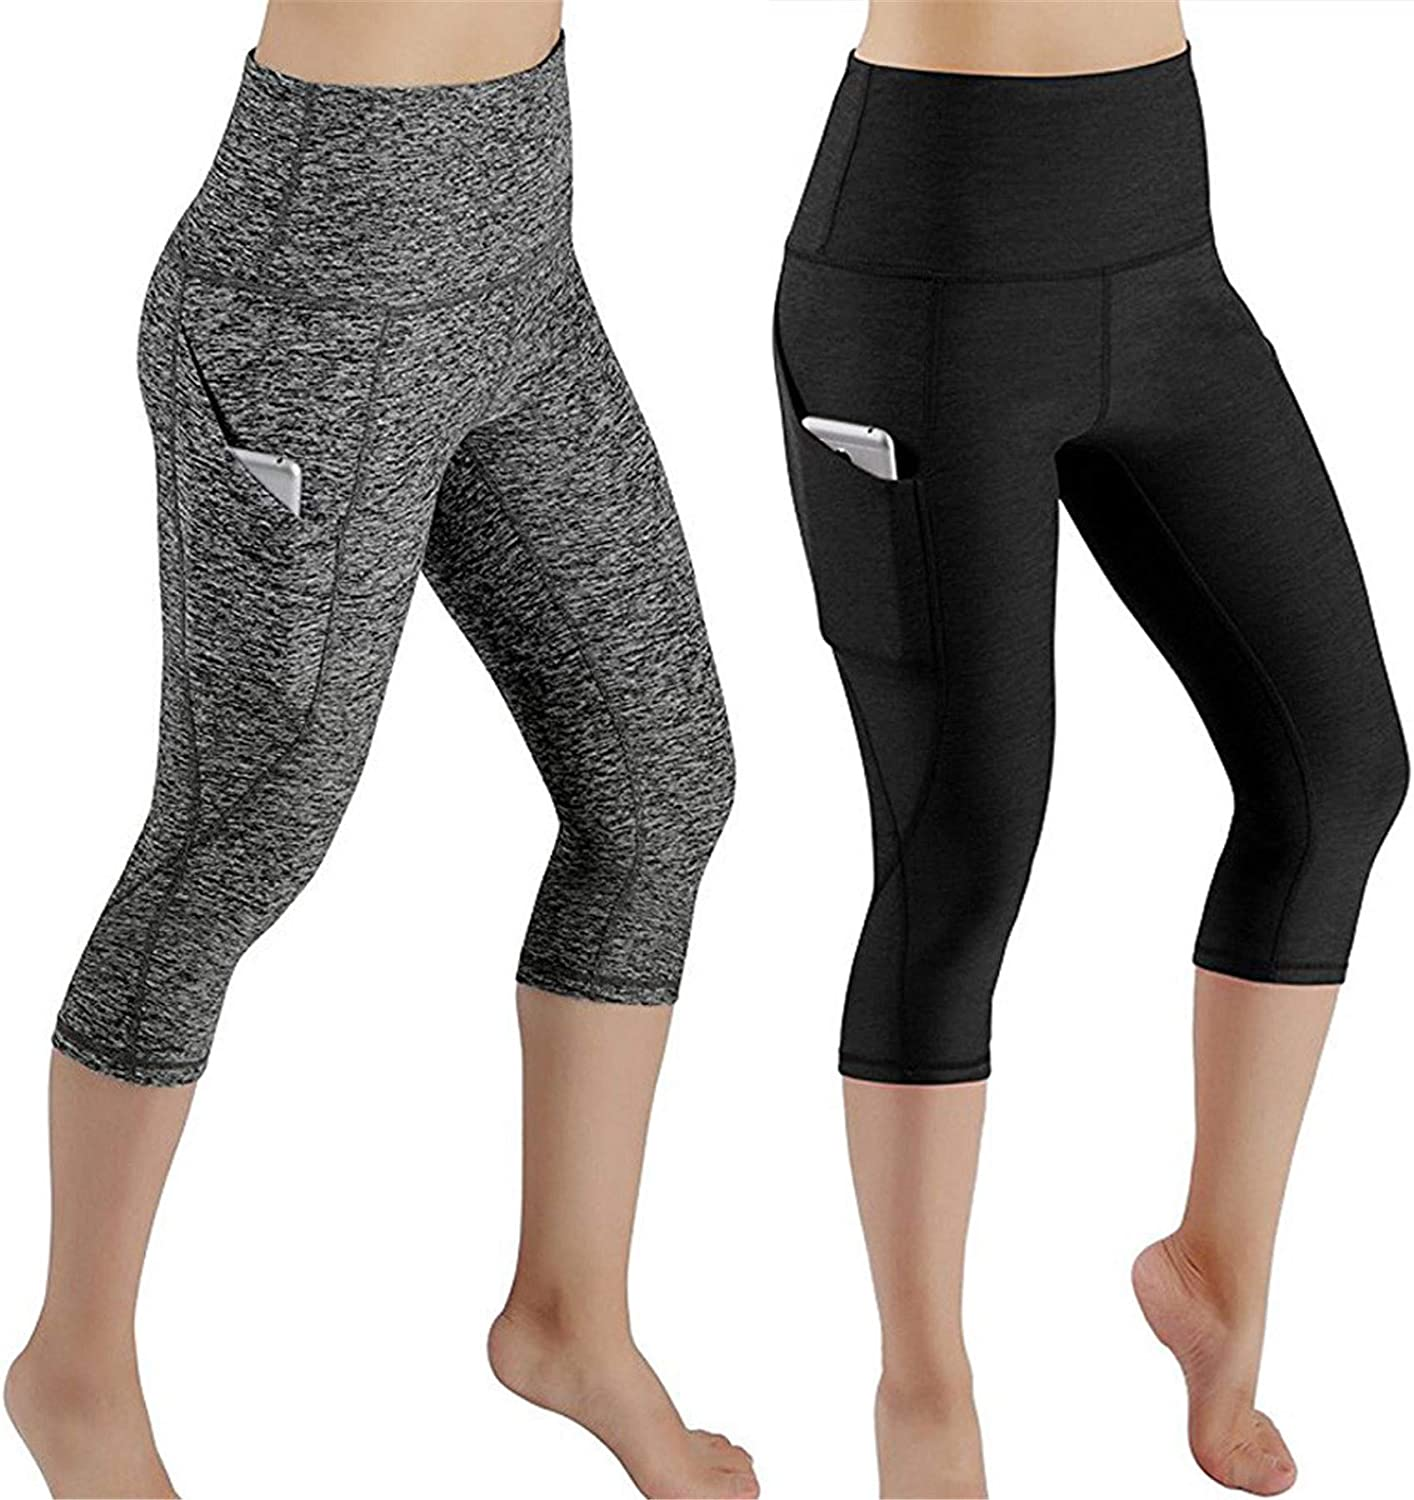 JSY Womens Sports High Rise Solid Butt-Lifting Leggings Yoga Pocket Pants